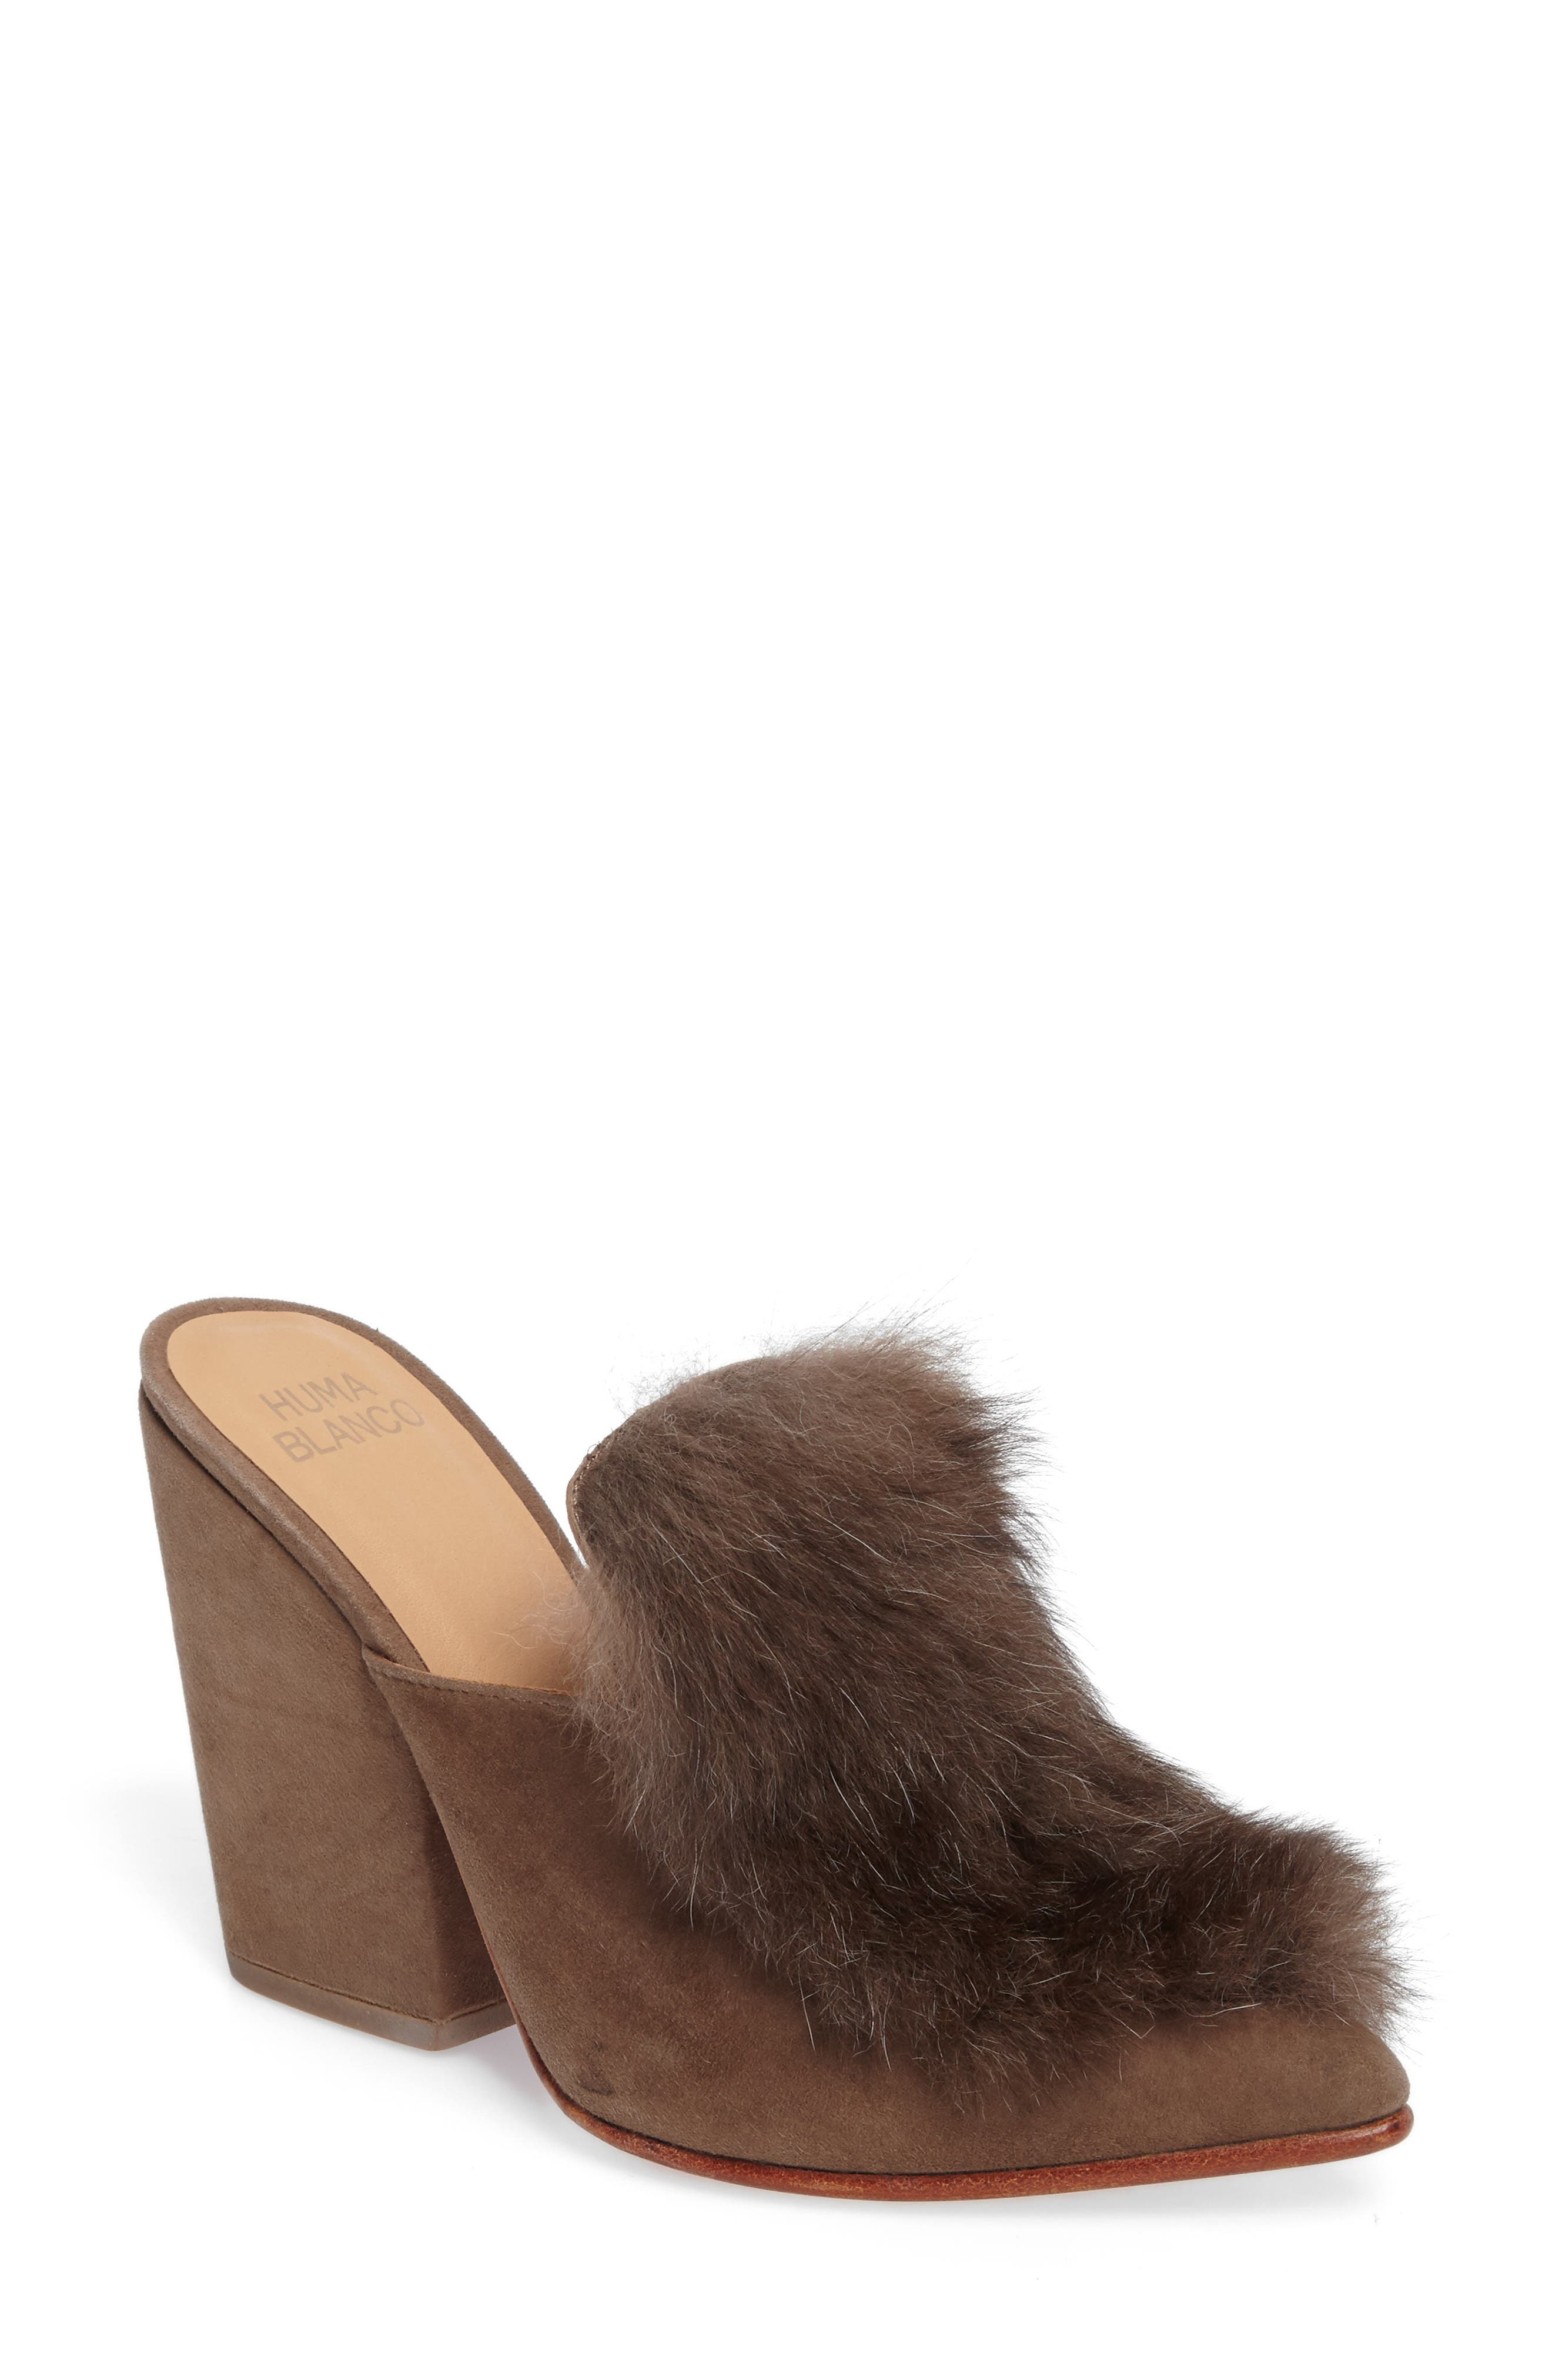 Main Image - Huma Blanco Marietta Genuine Alpaca Hair Mule (Women)